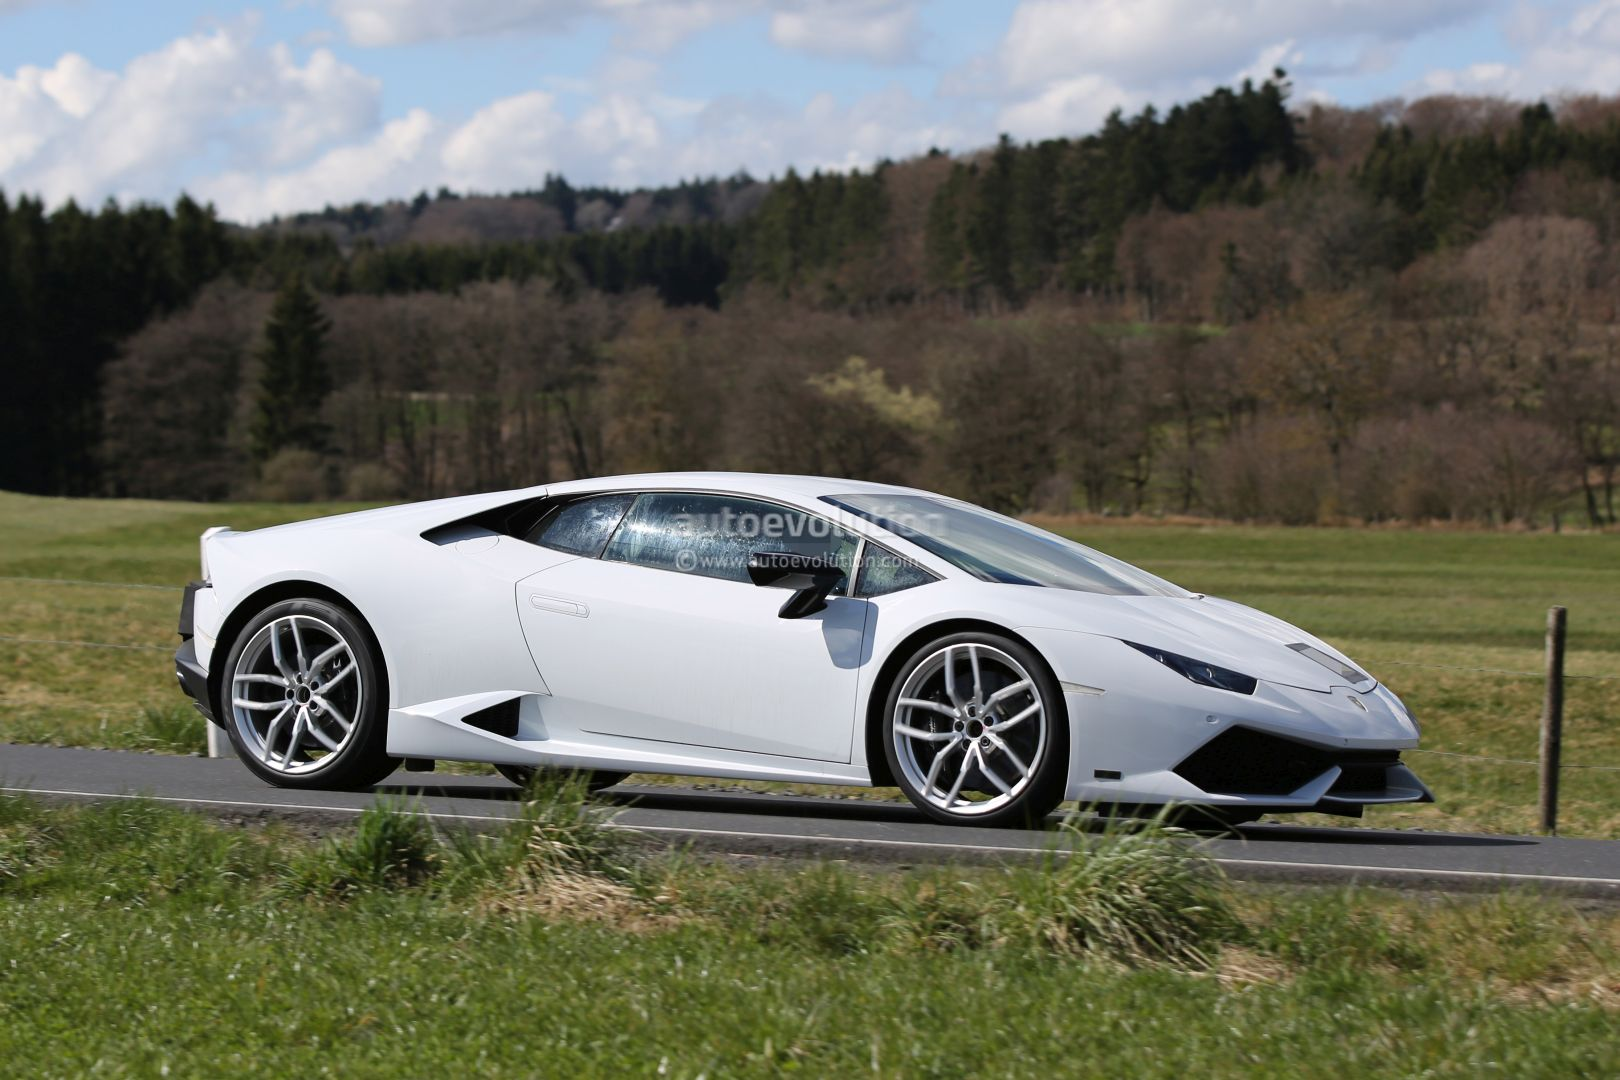 2017 lamborghini huracan superleggera spied shows new gt3 inspired exhaust tips autoevolution. Black Bedroom Furniture Sets. Home Design Ideas